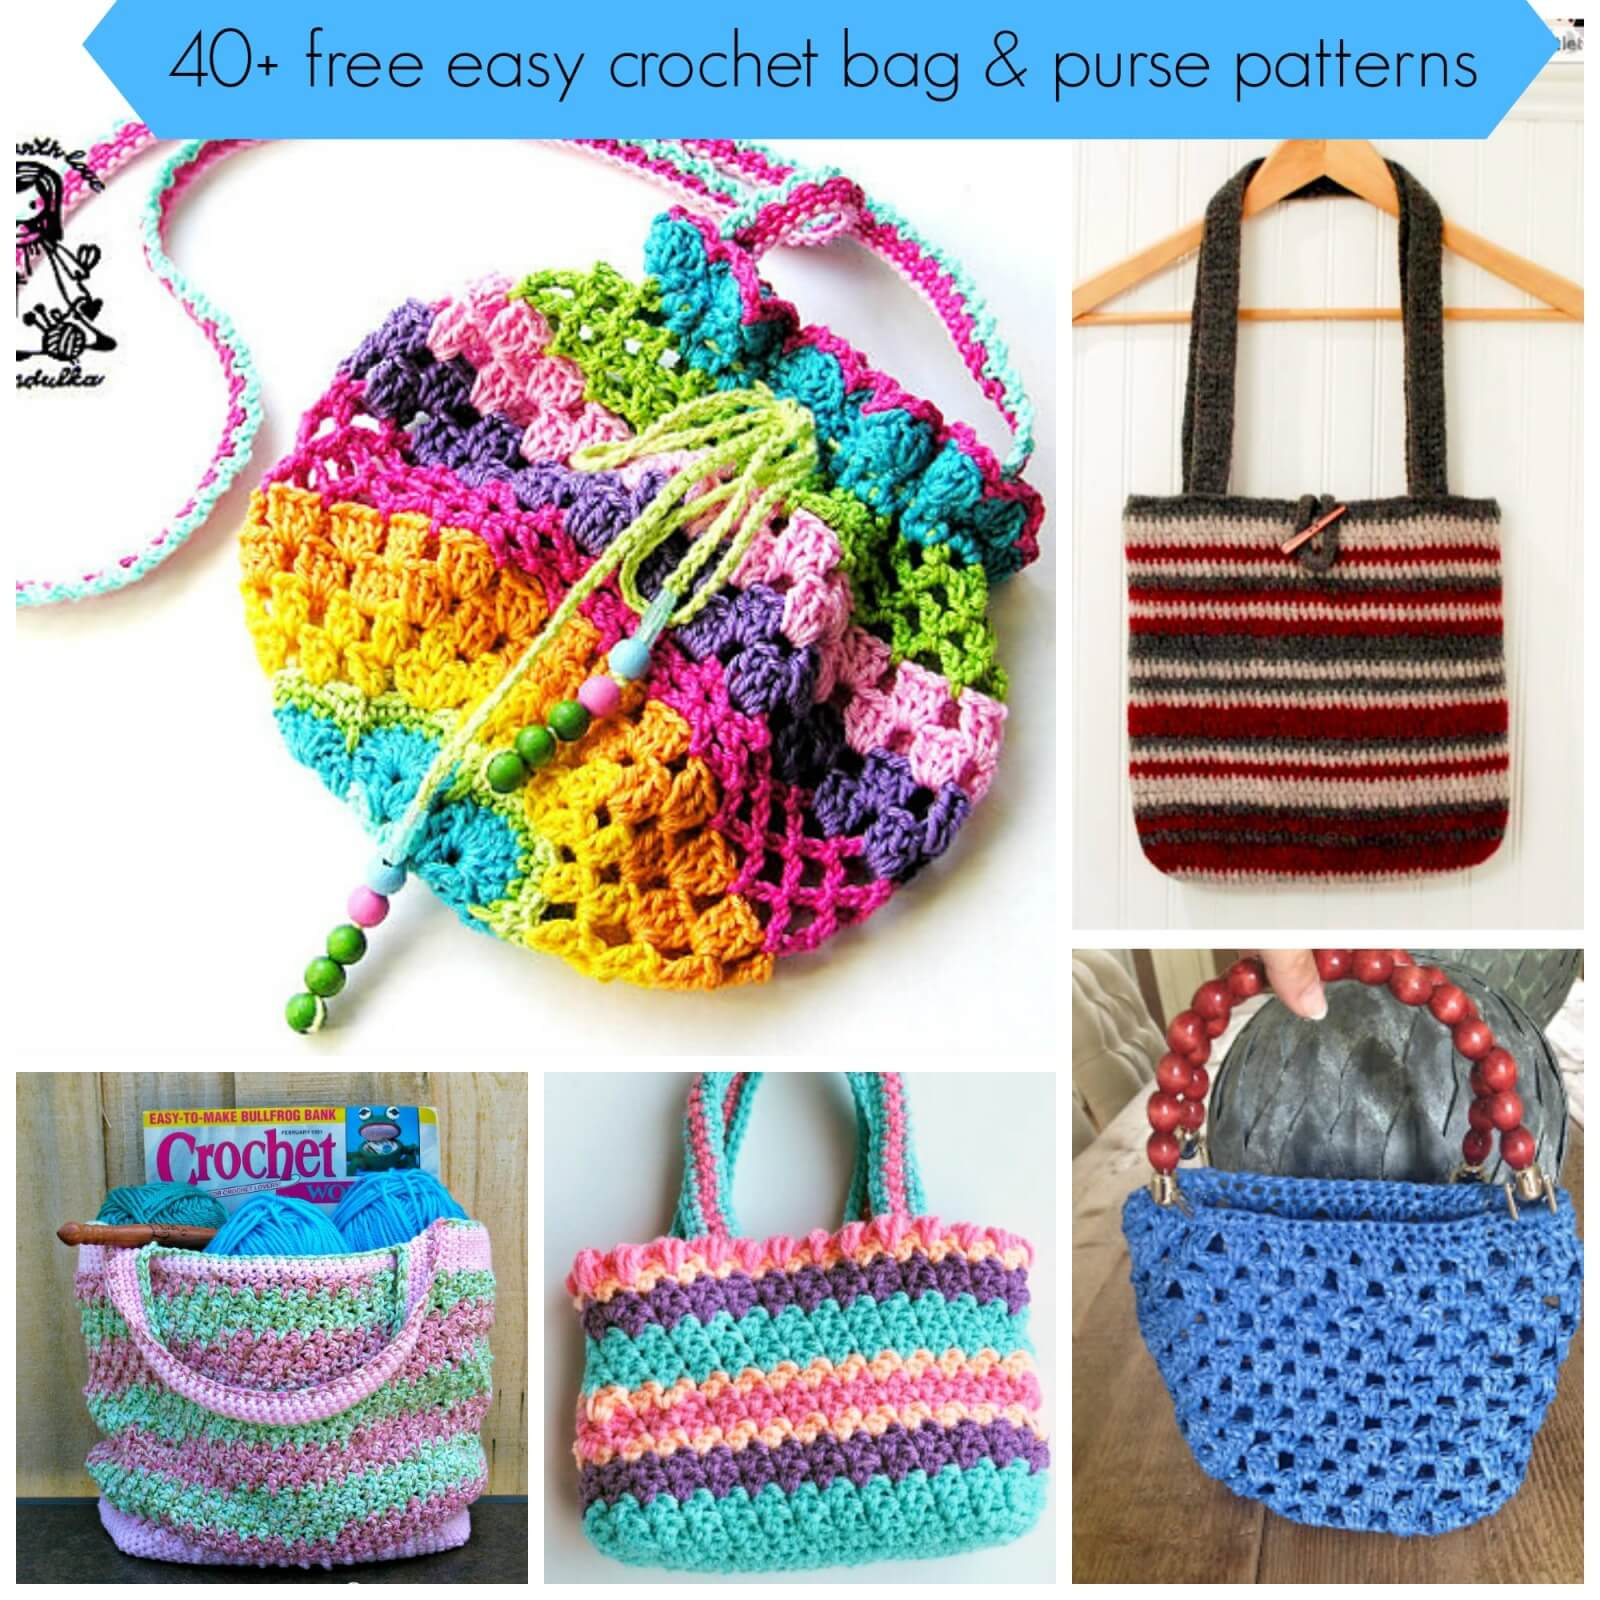 Crochet Patterns For Purses And Bags : 40+free-easy-crochet-bag-and-purse-pattern-tutorial.jpg